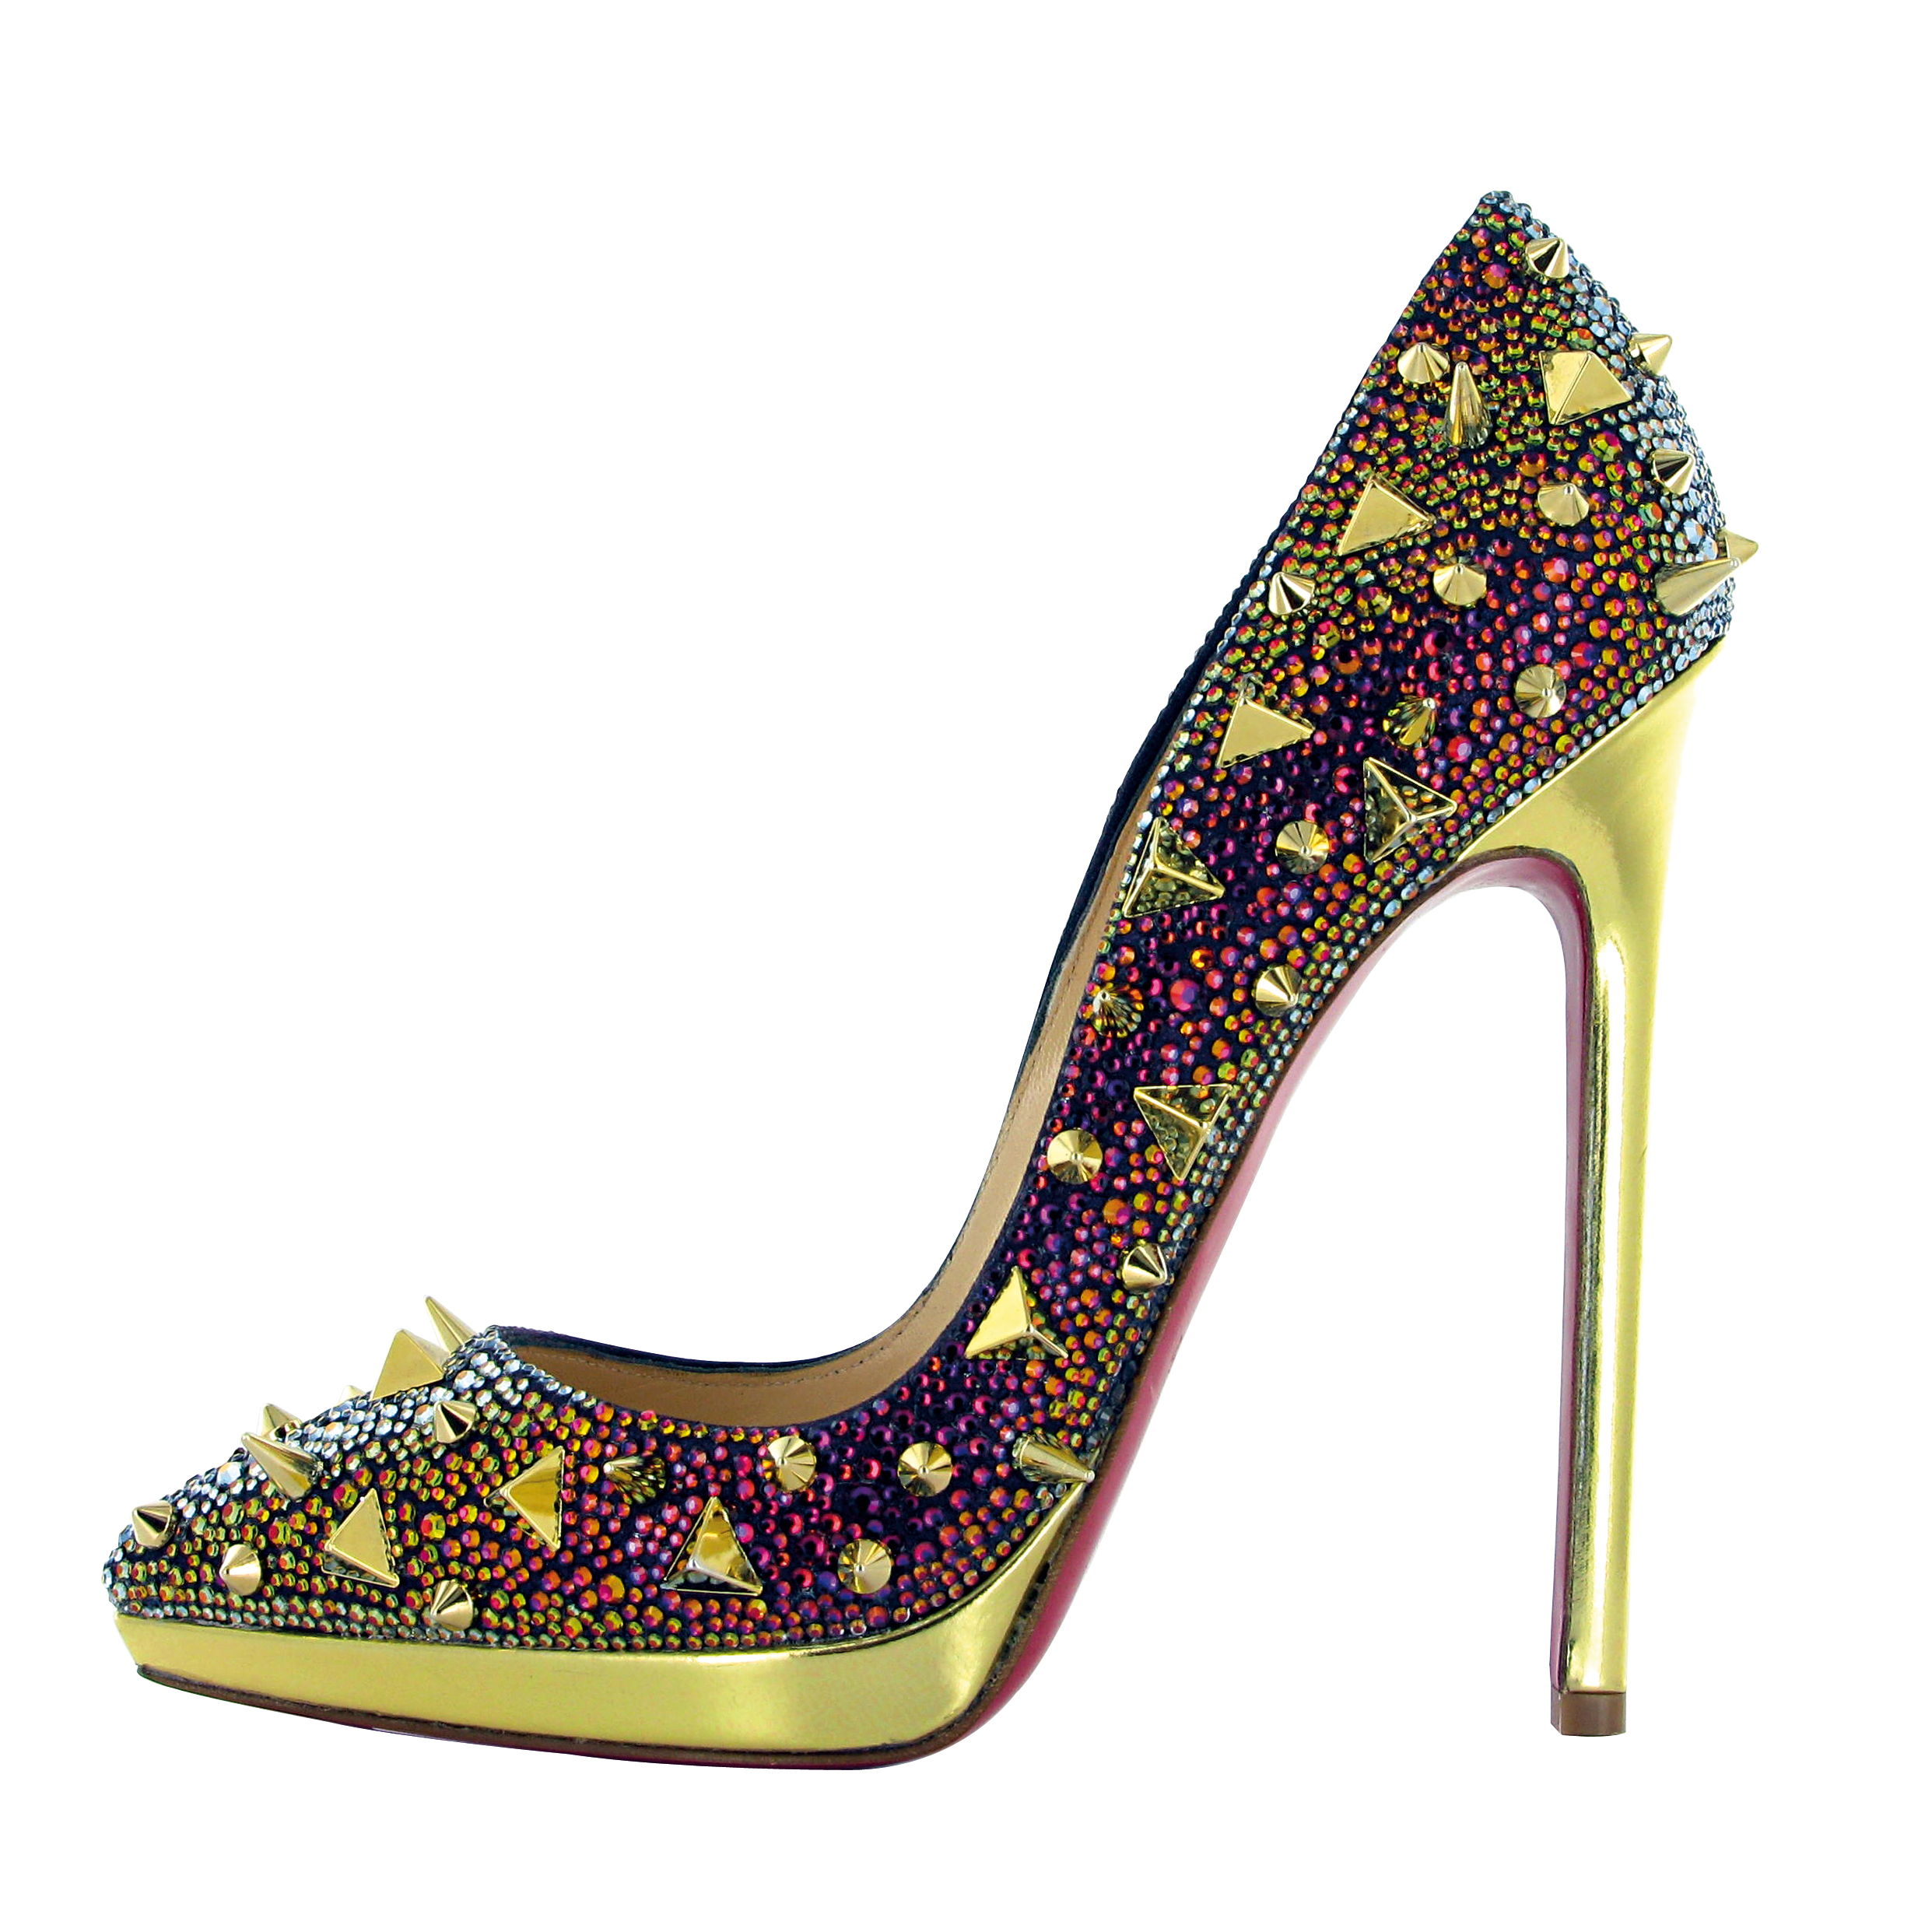 00be47e93c86 Confessions of a Shoe Addict  Louboutin Pigalili Strass